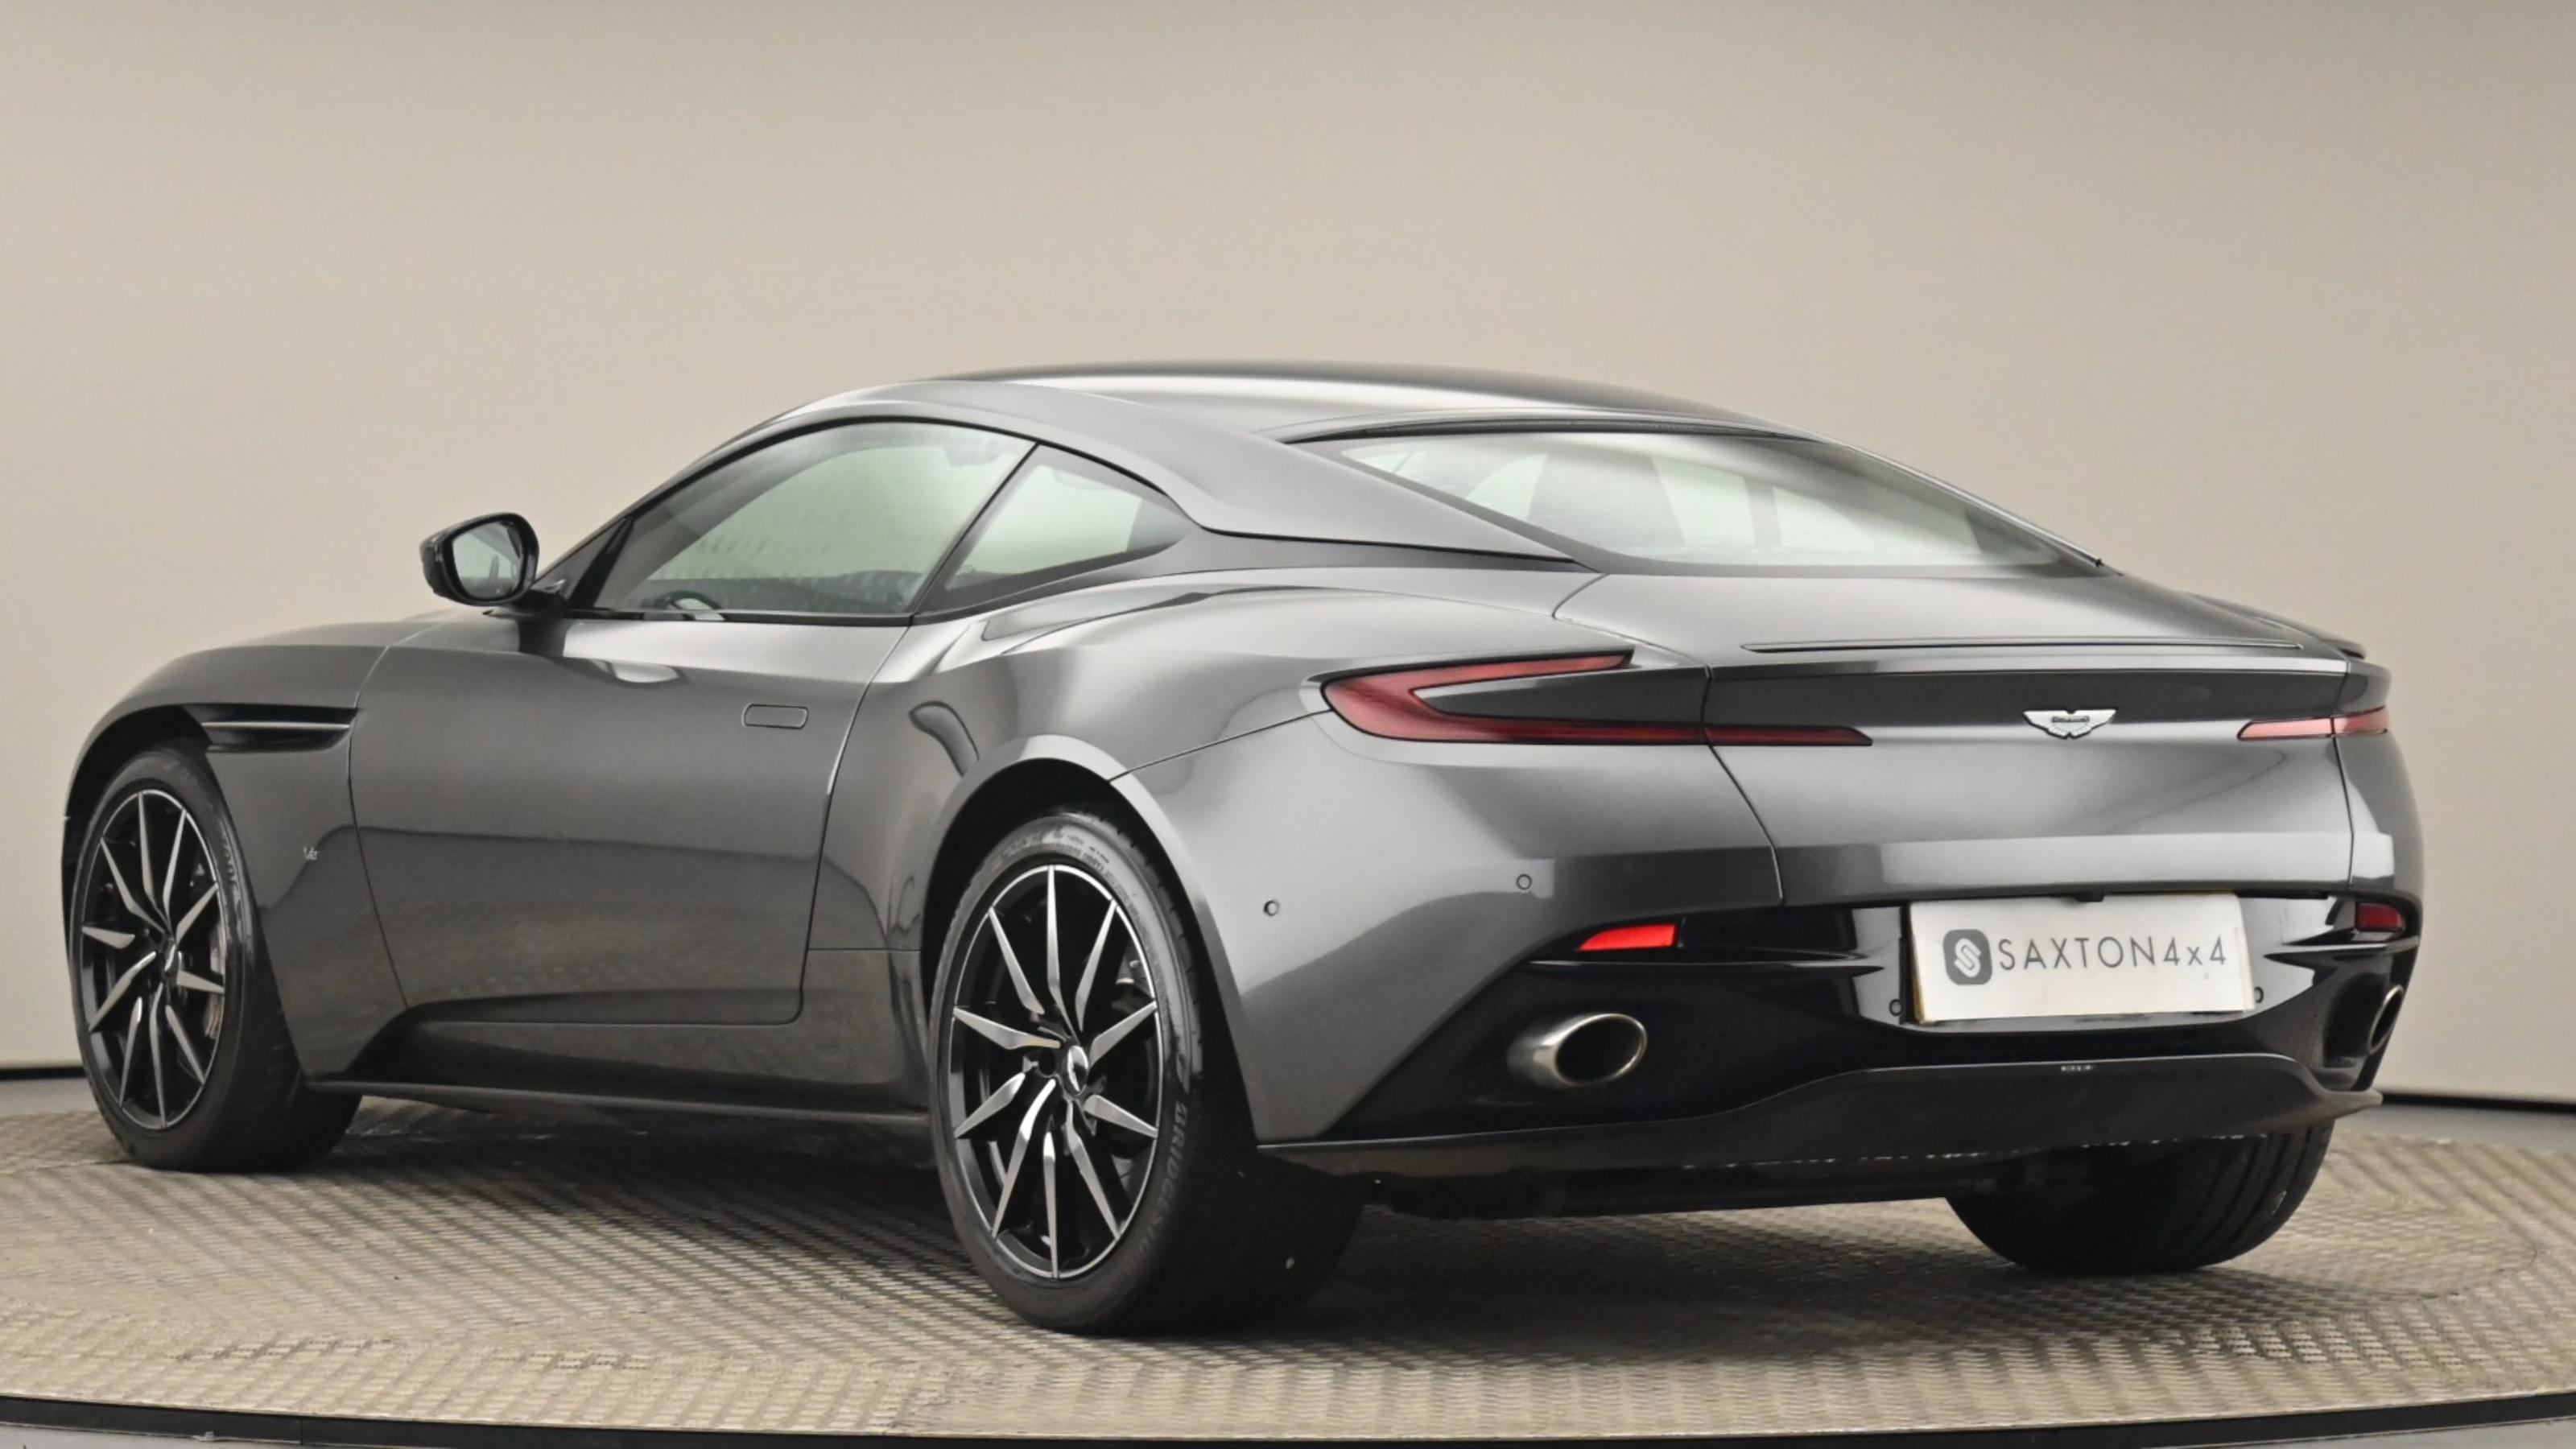 Used 2017 Aston Martin DB11 V12 Launch Edition 2dr Touchtronic Auto SILVER at Saxton4x4